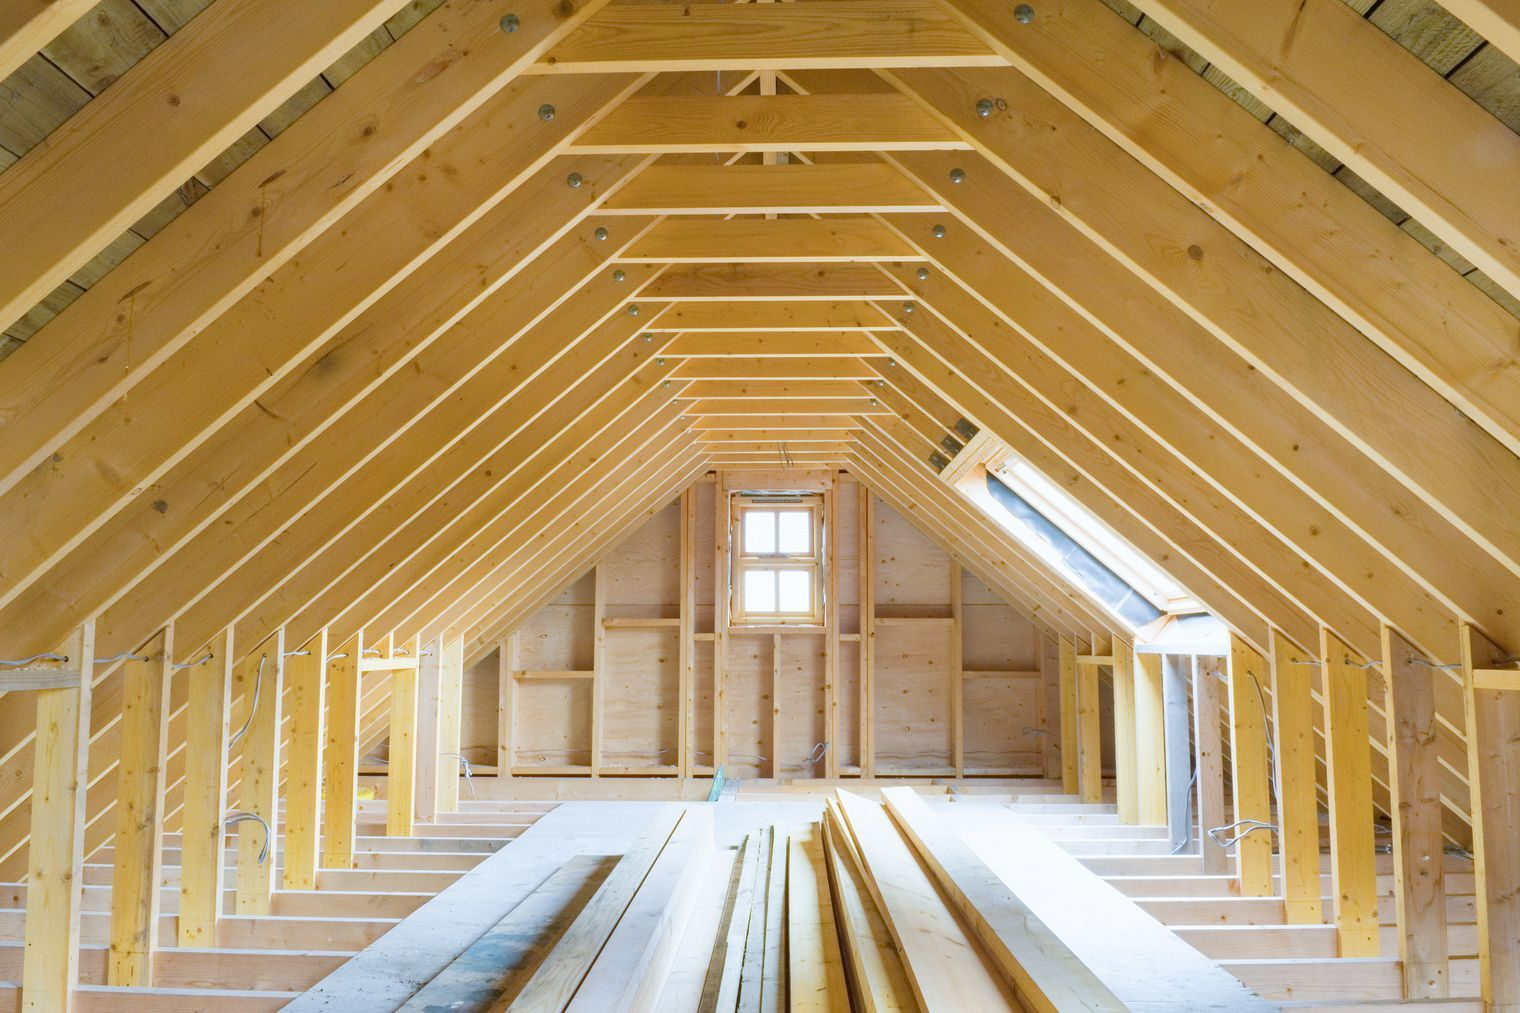 Read This Before You Insulate Your Attic In 2020 Attic Insulation Loft Roof Insulation Roof Architecture